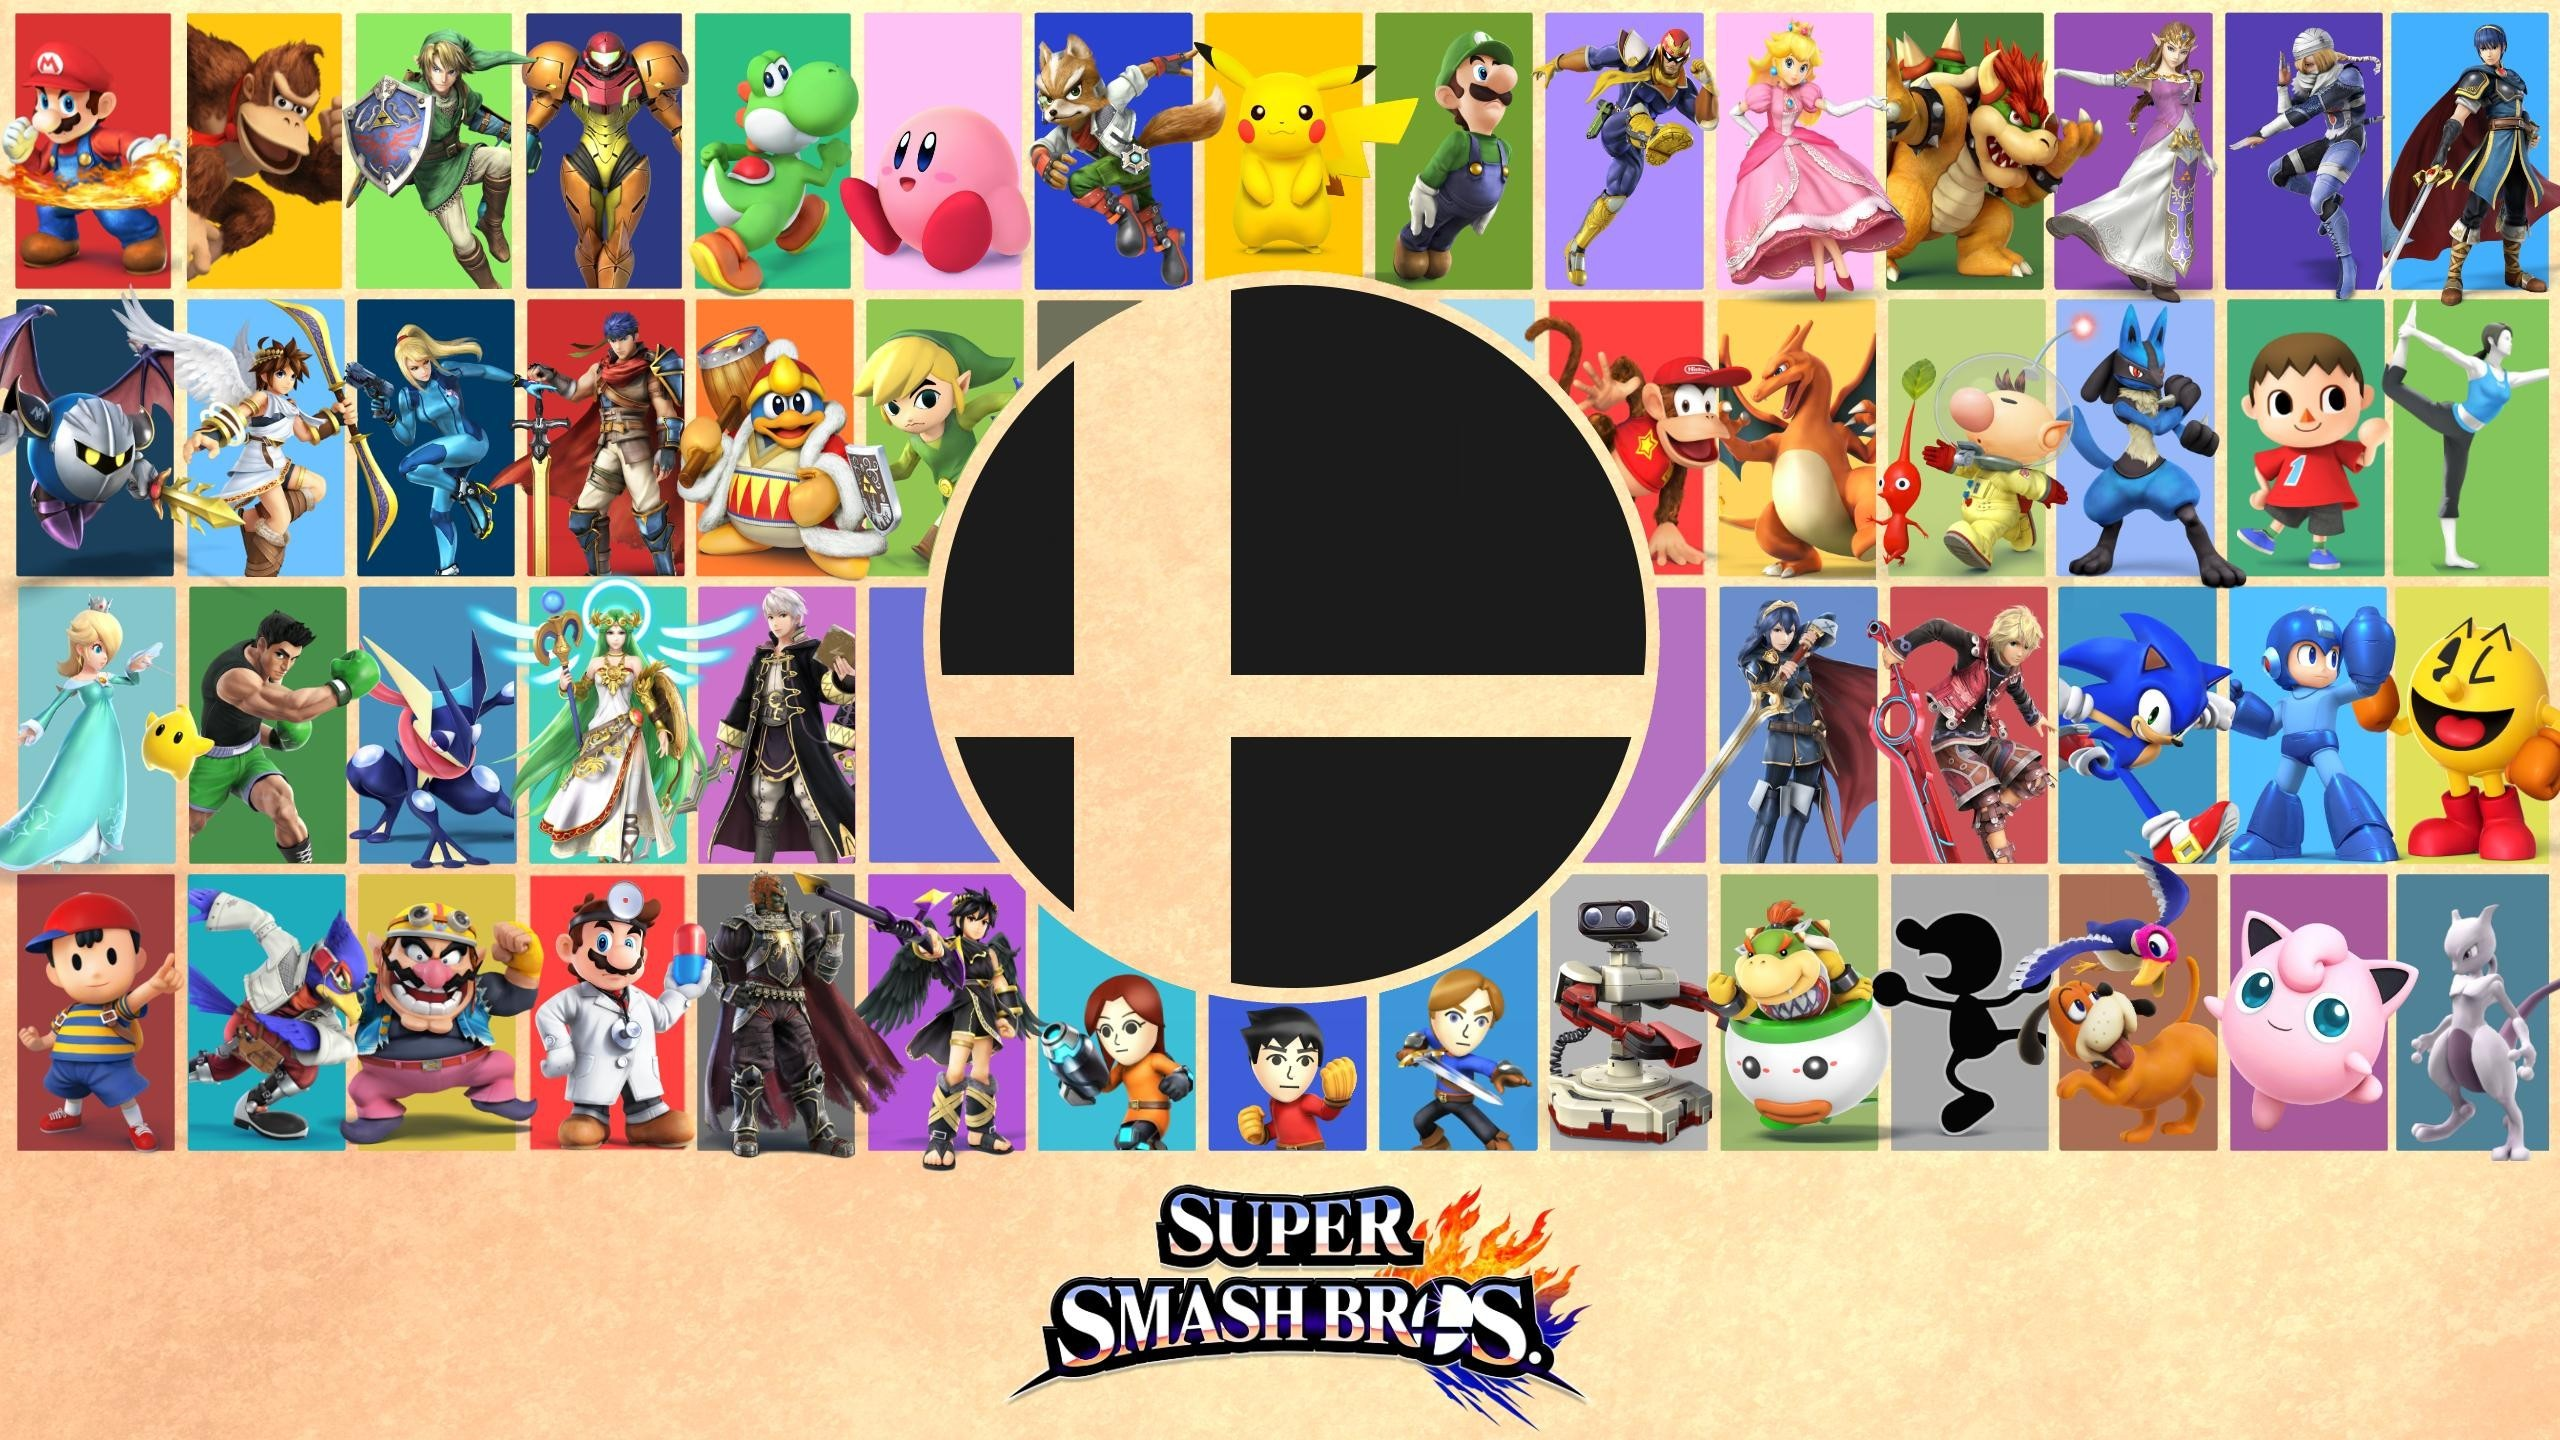 Super Smash Bros For Nintendo 3ds And Wii U Hd Wallpaper